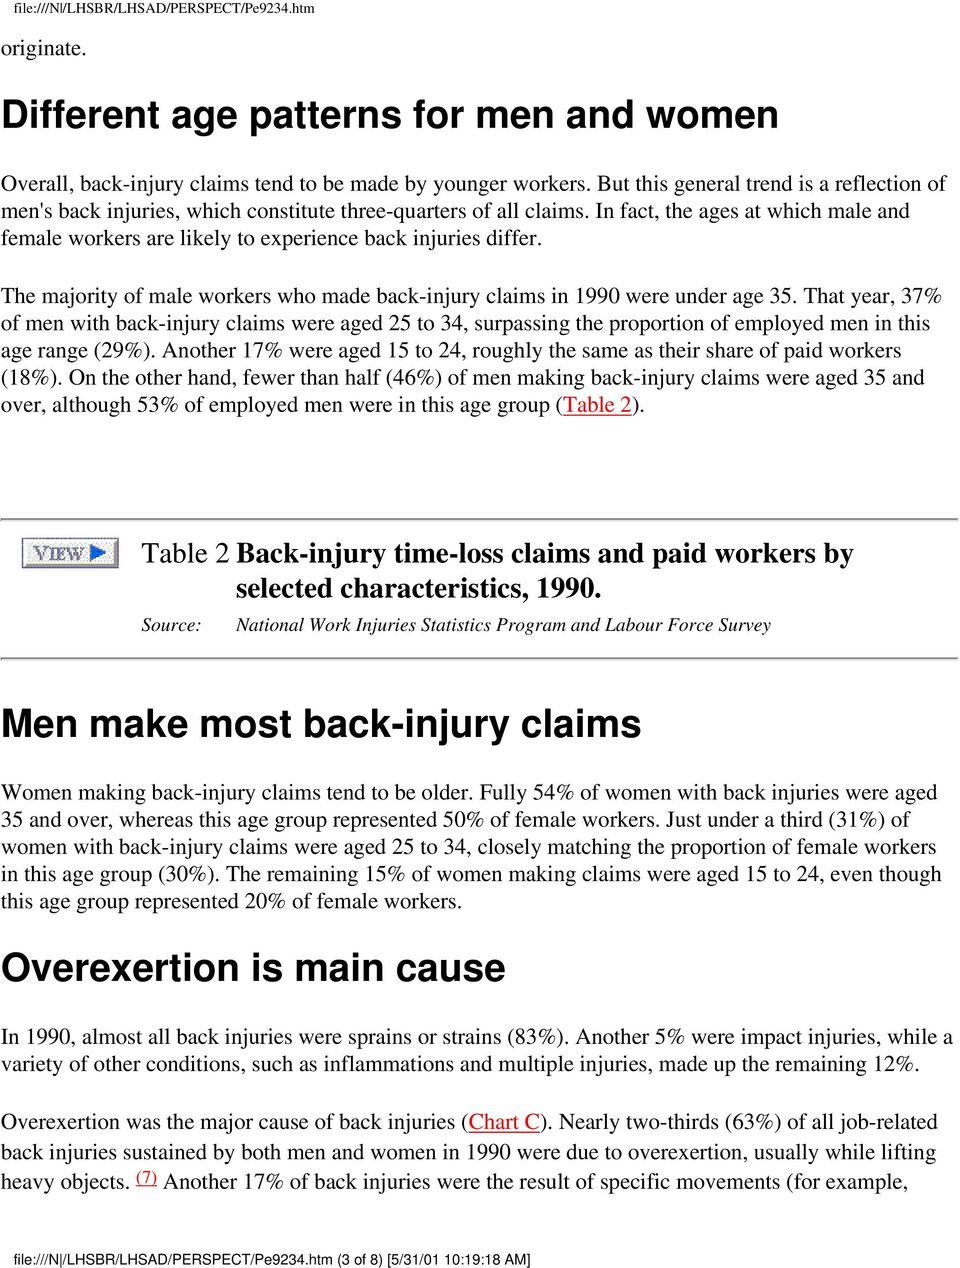 In fact, the ages at which male and female workers are likely to experience back injuries differ. The majority of male workers who made back-injury claims in 1990 were under age 35.